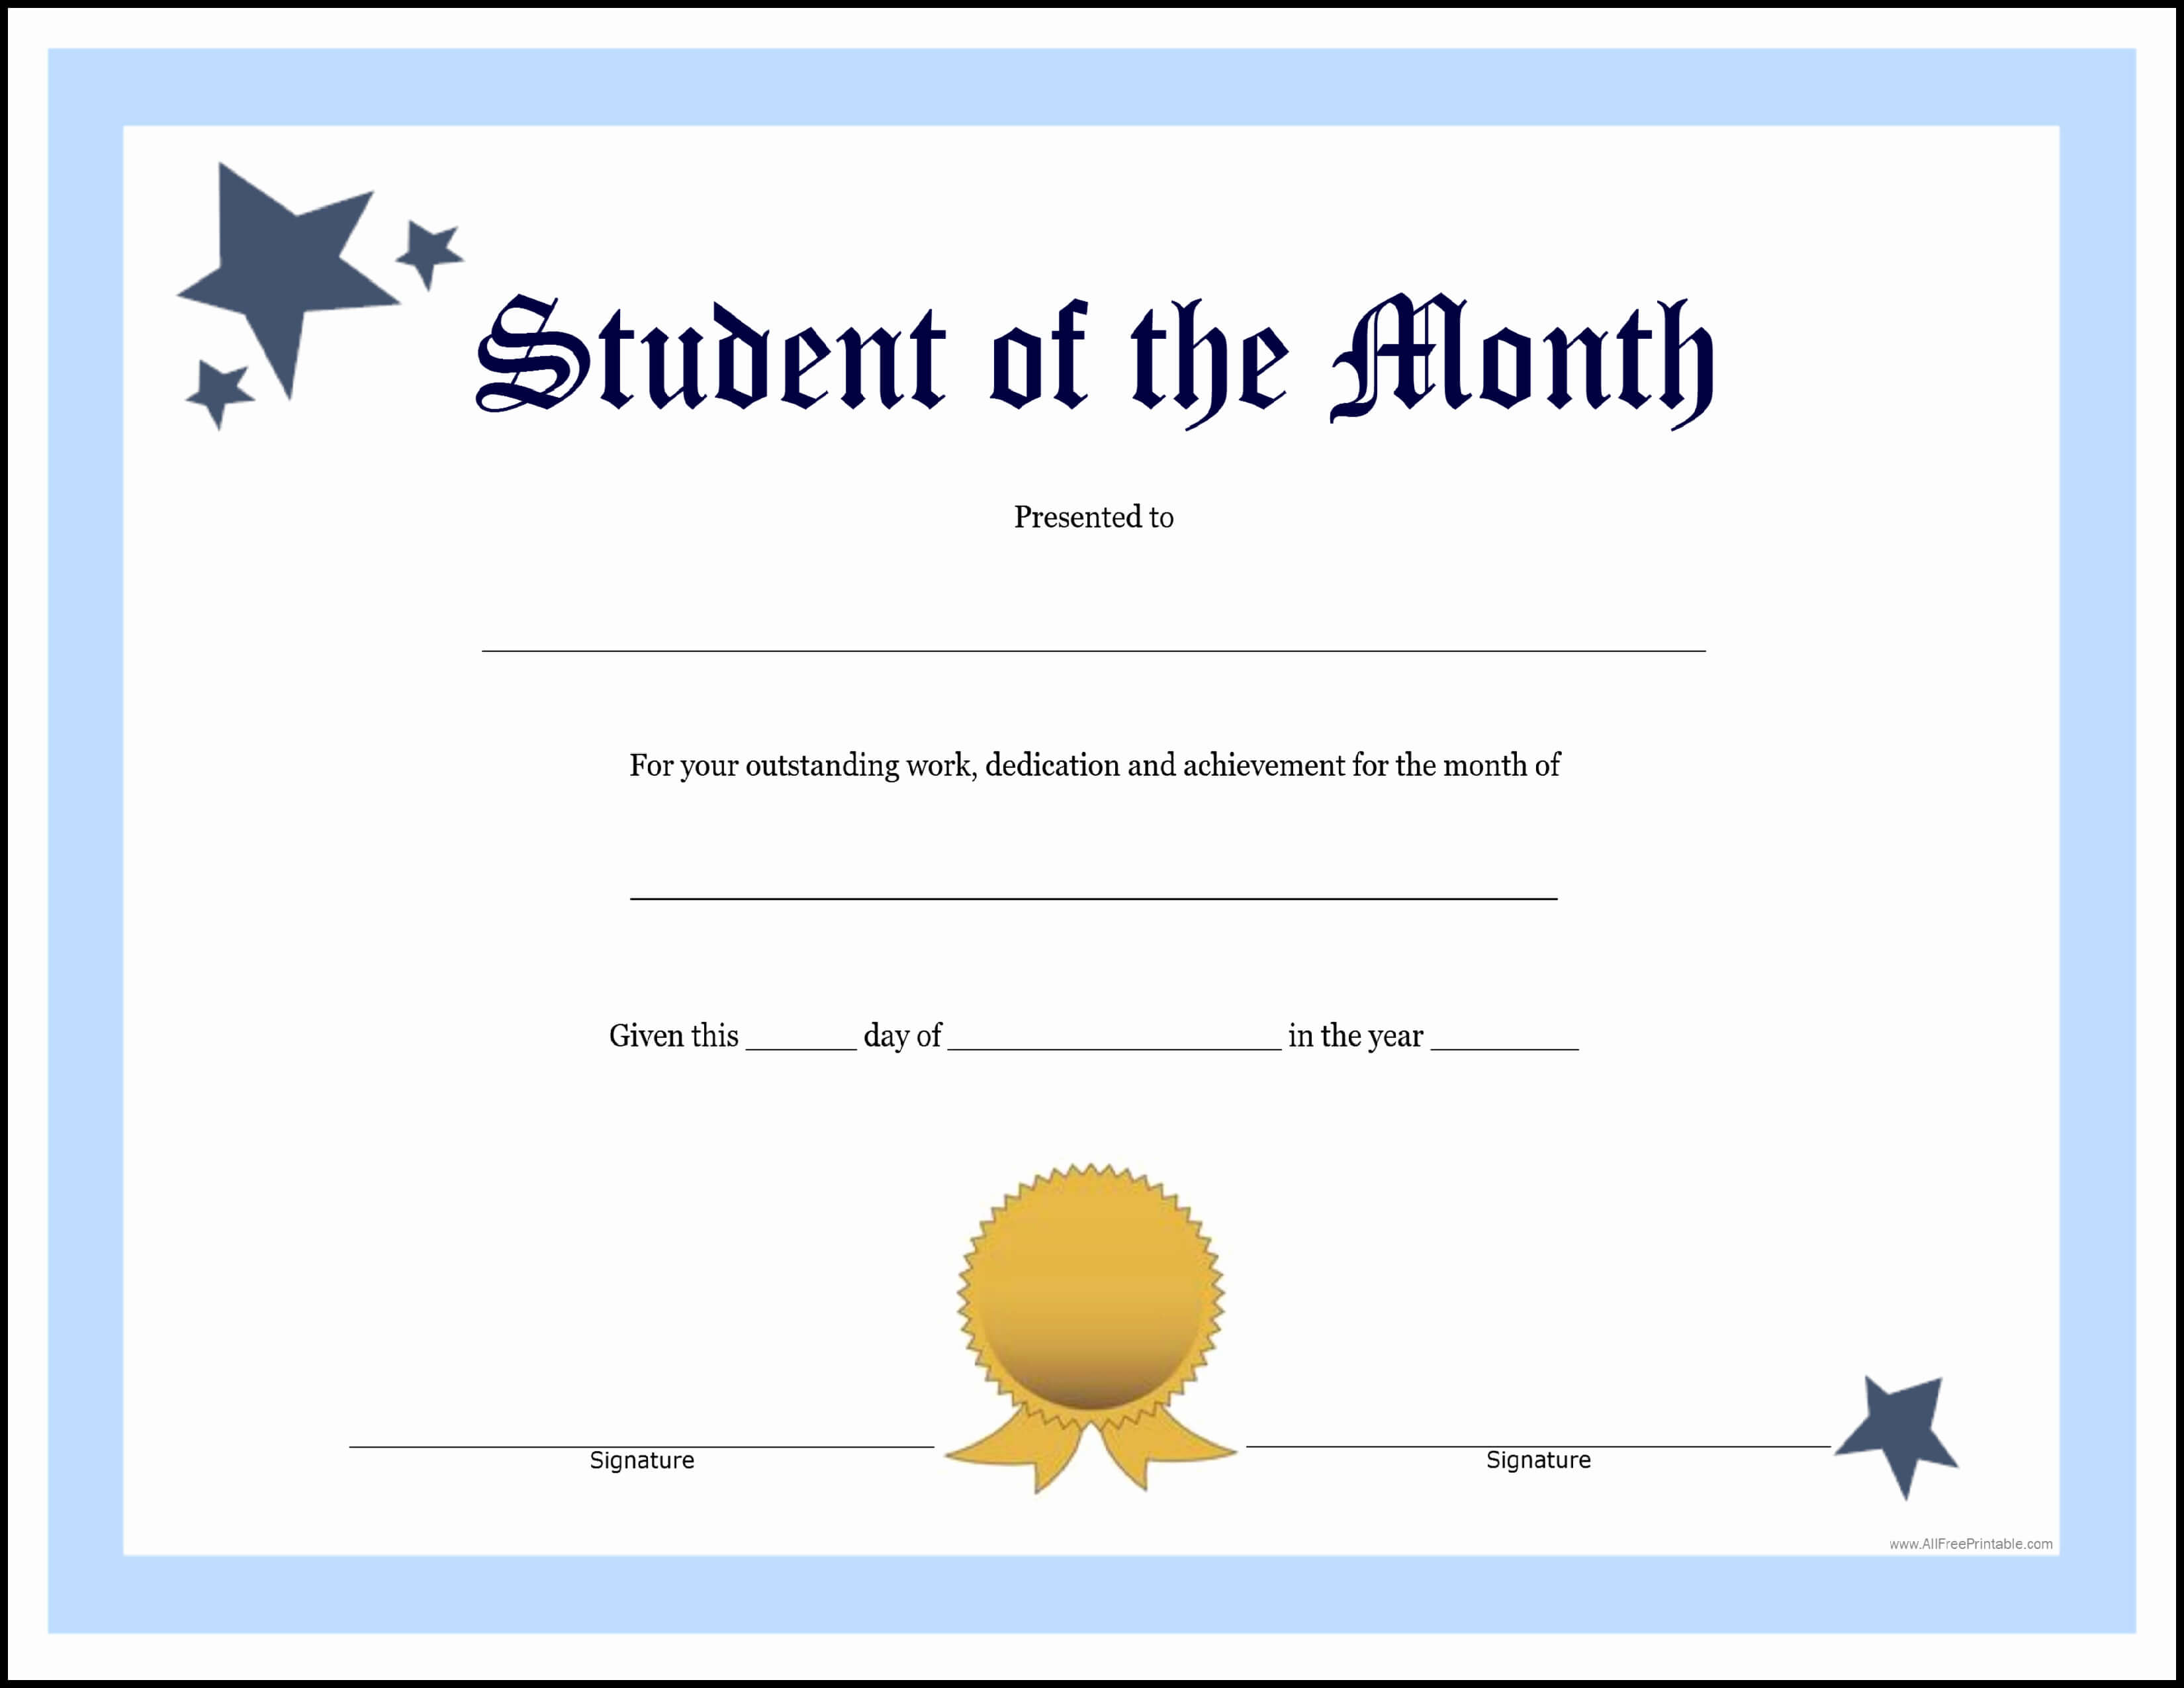 30 Student Of The Month Certificate Template | Pryncepality Within Free Printable Student Of The Month Certificate Templates